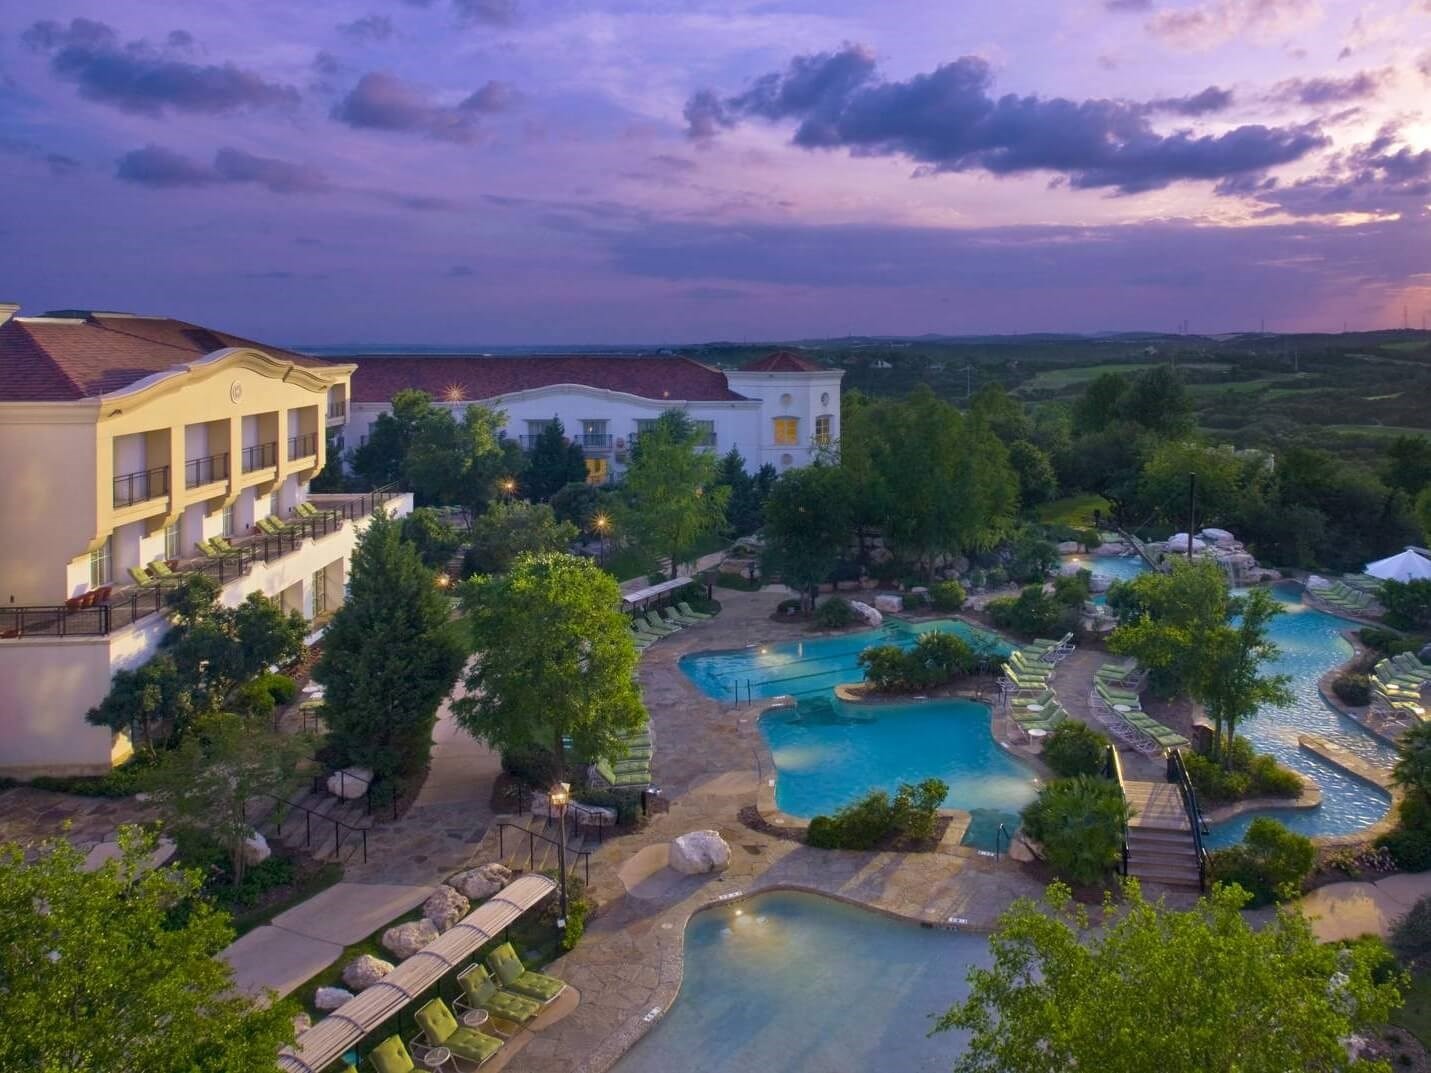 Image of La Cantera Hill Country Resort